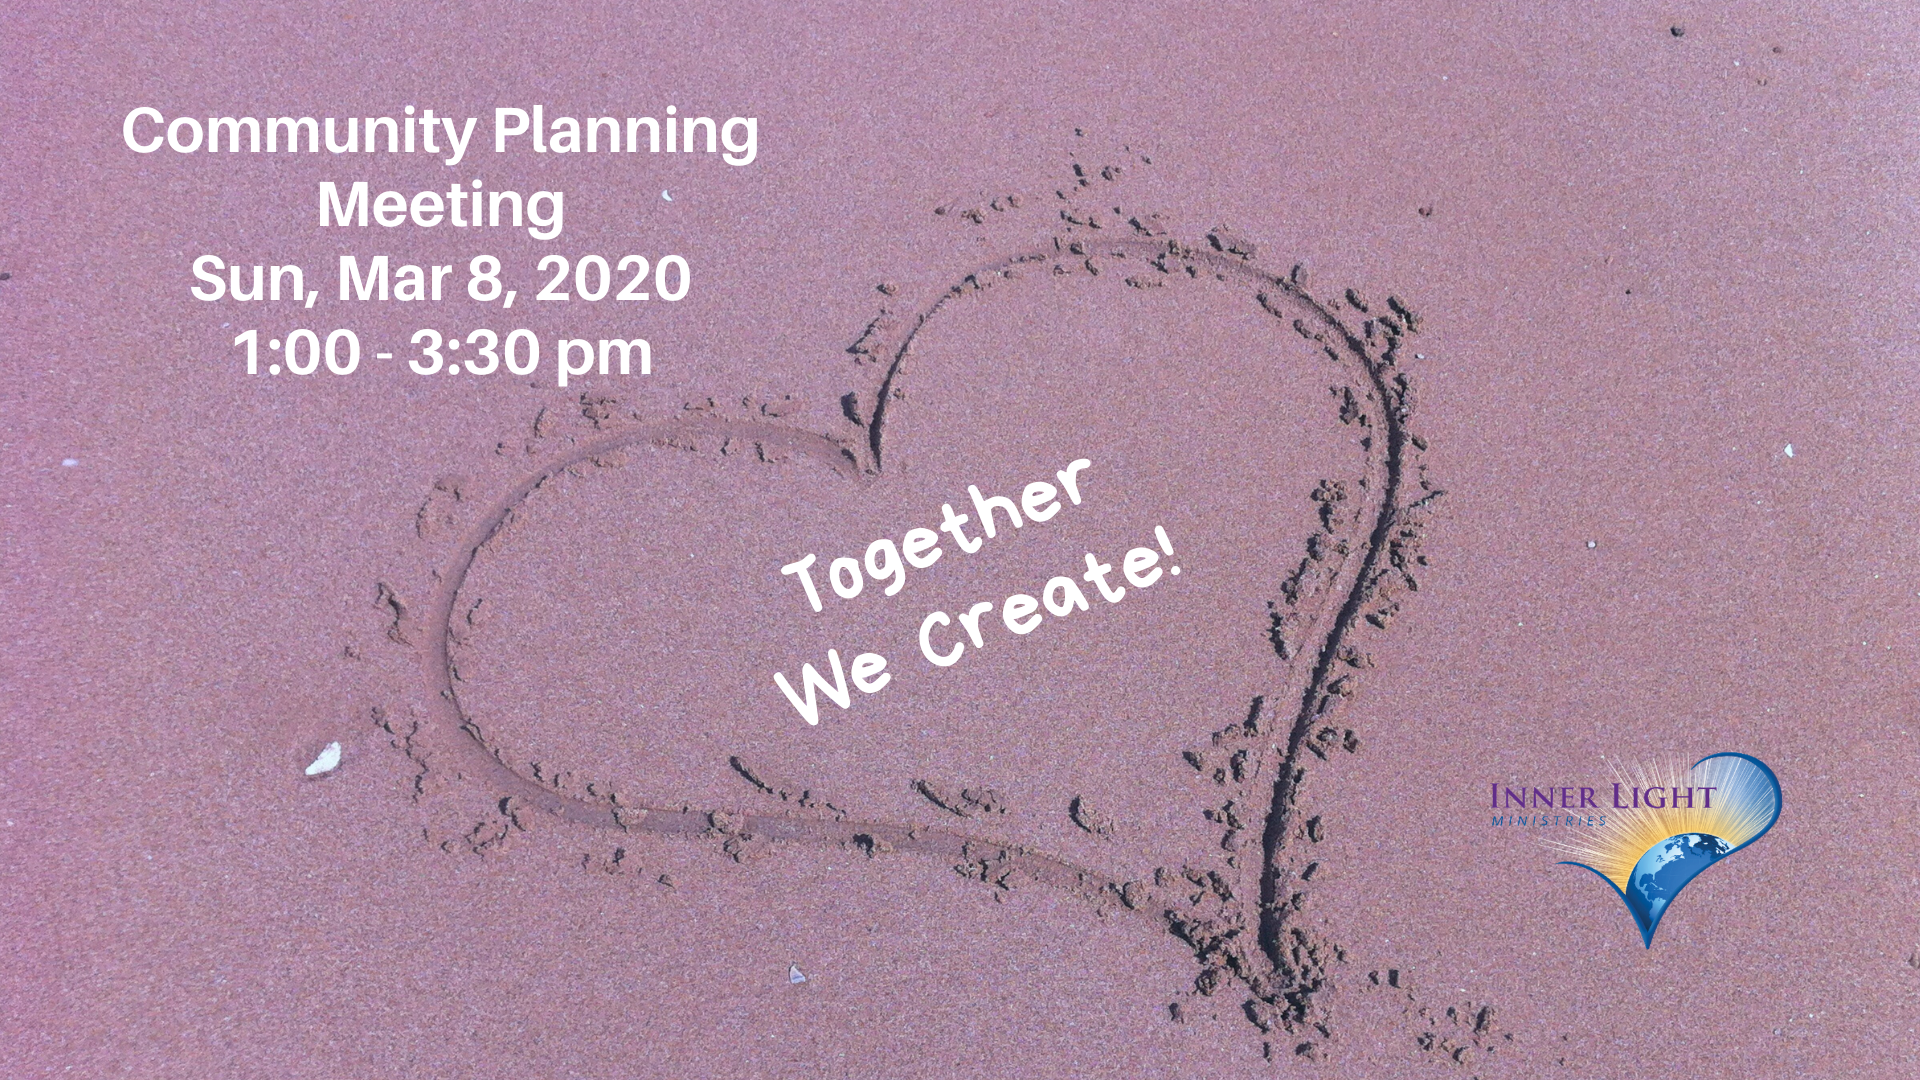 Community Planning Meeting & Potluck